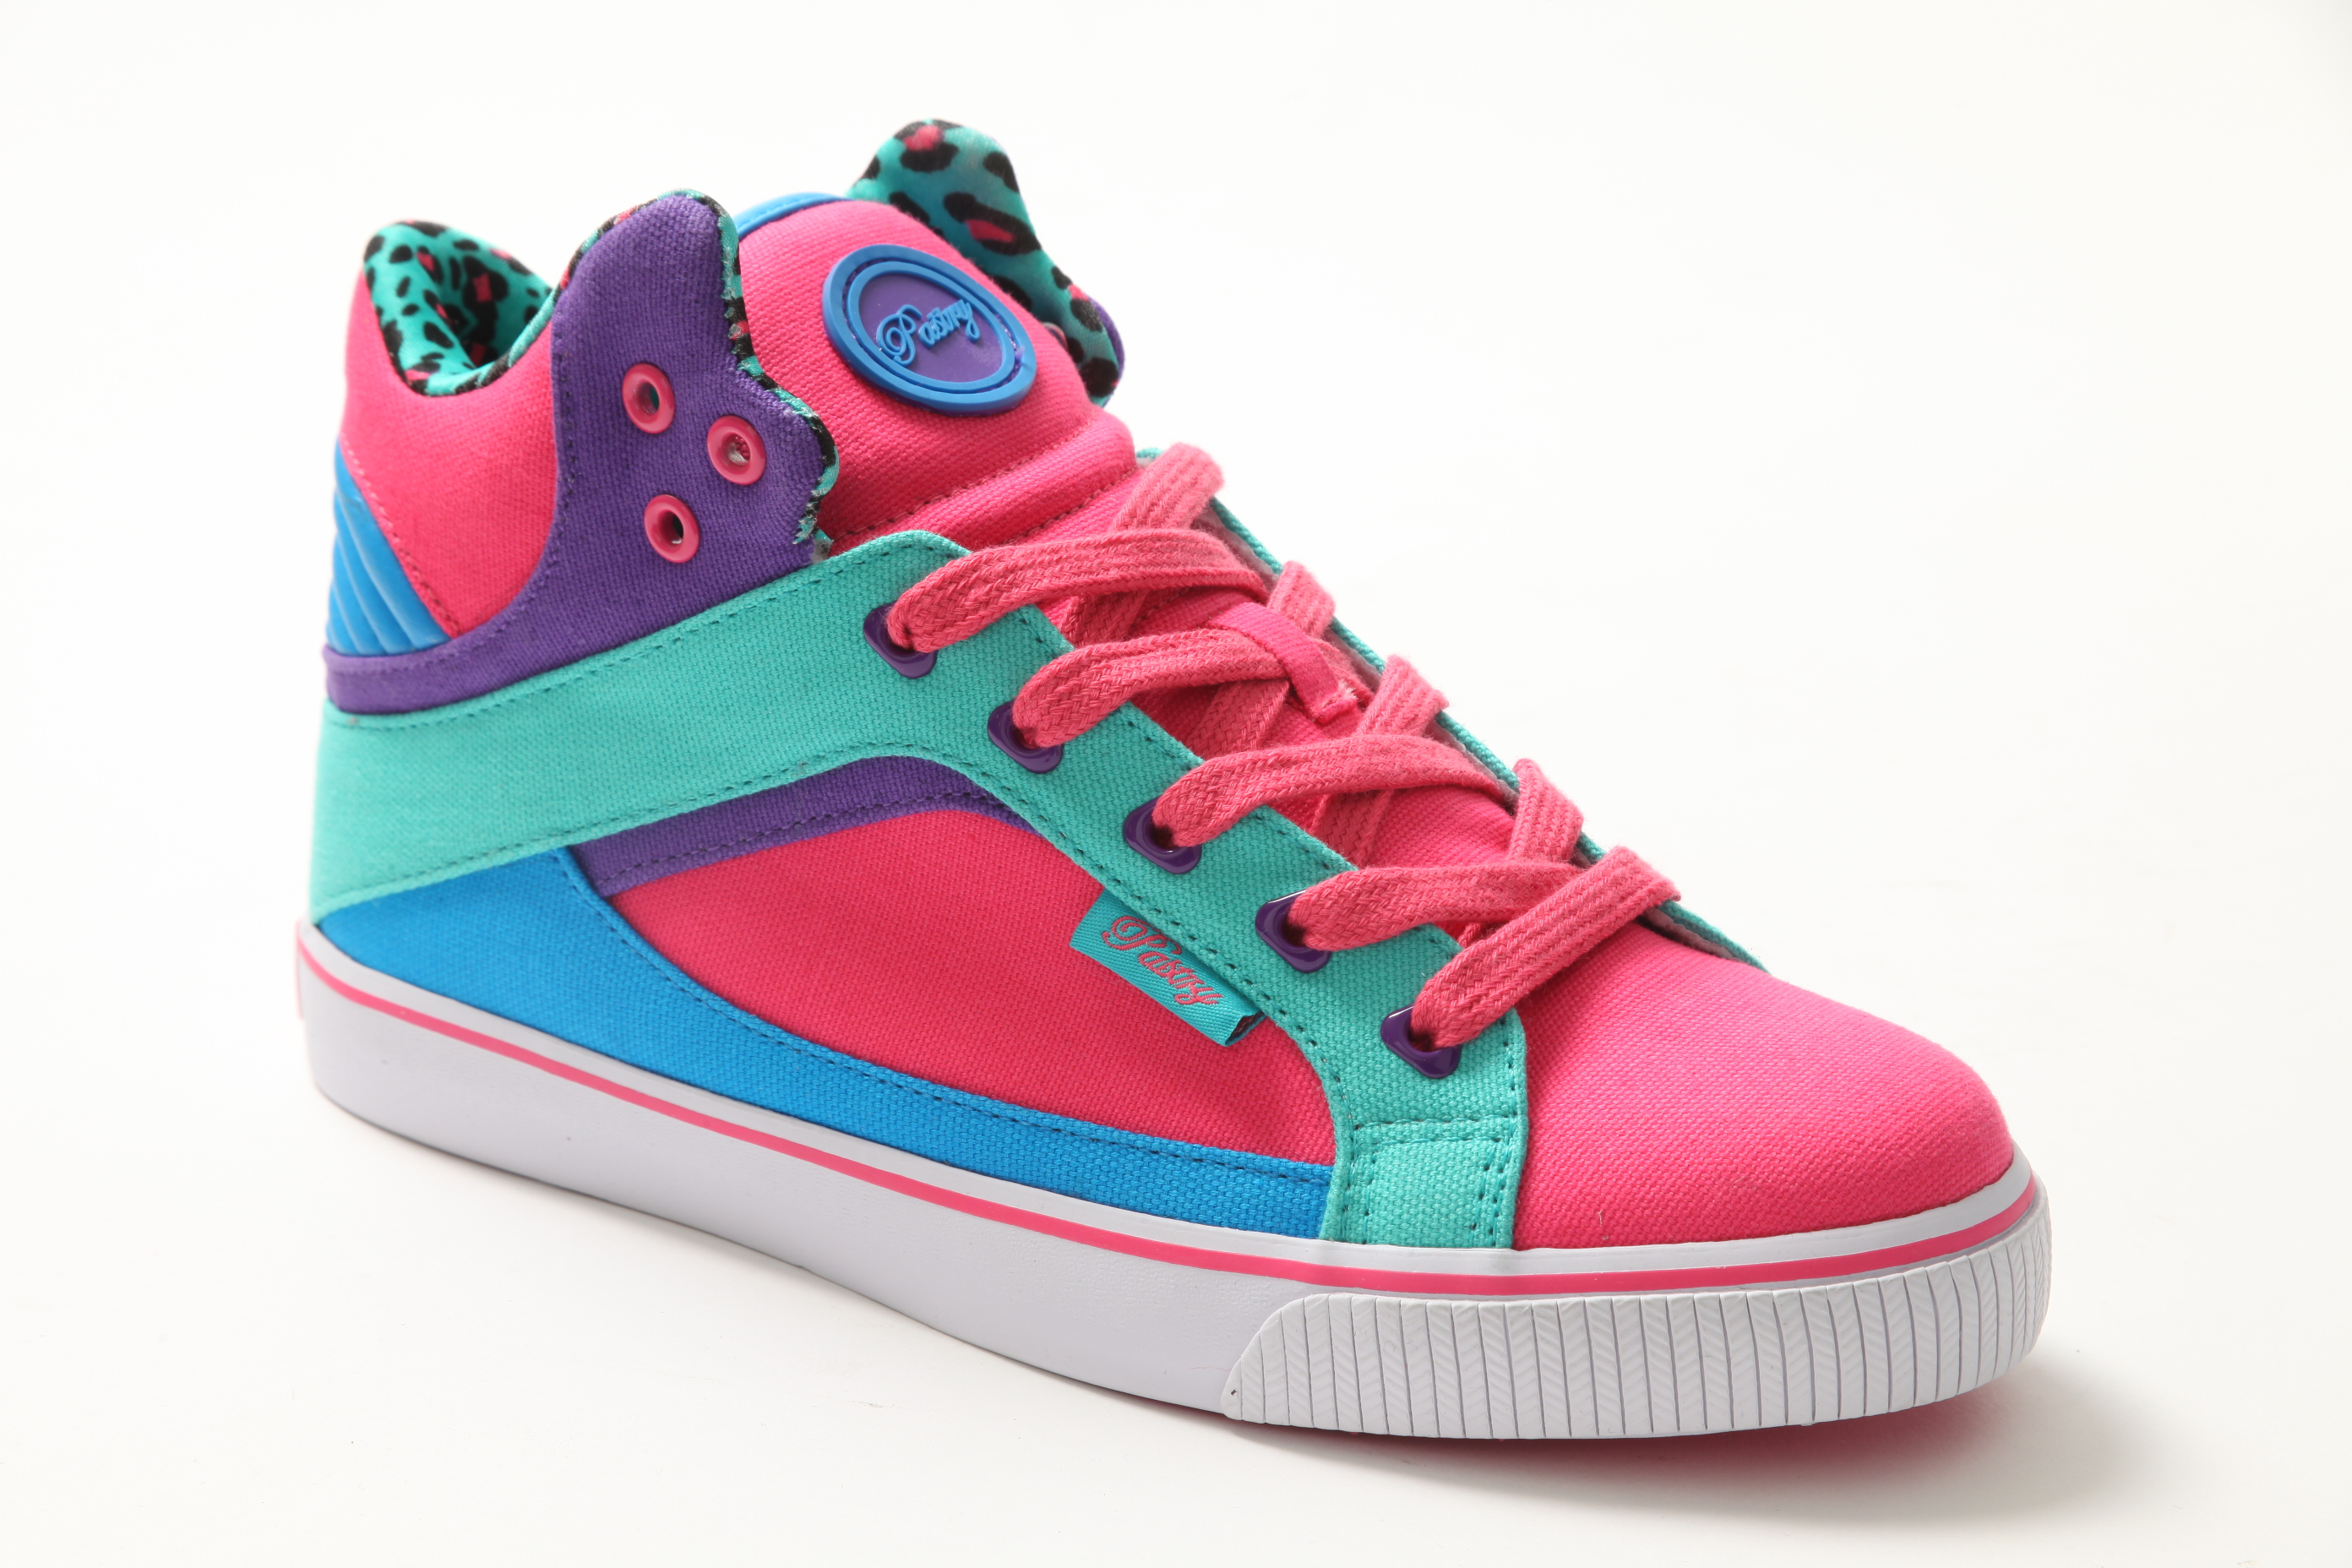 Girls Pastry Shoes